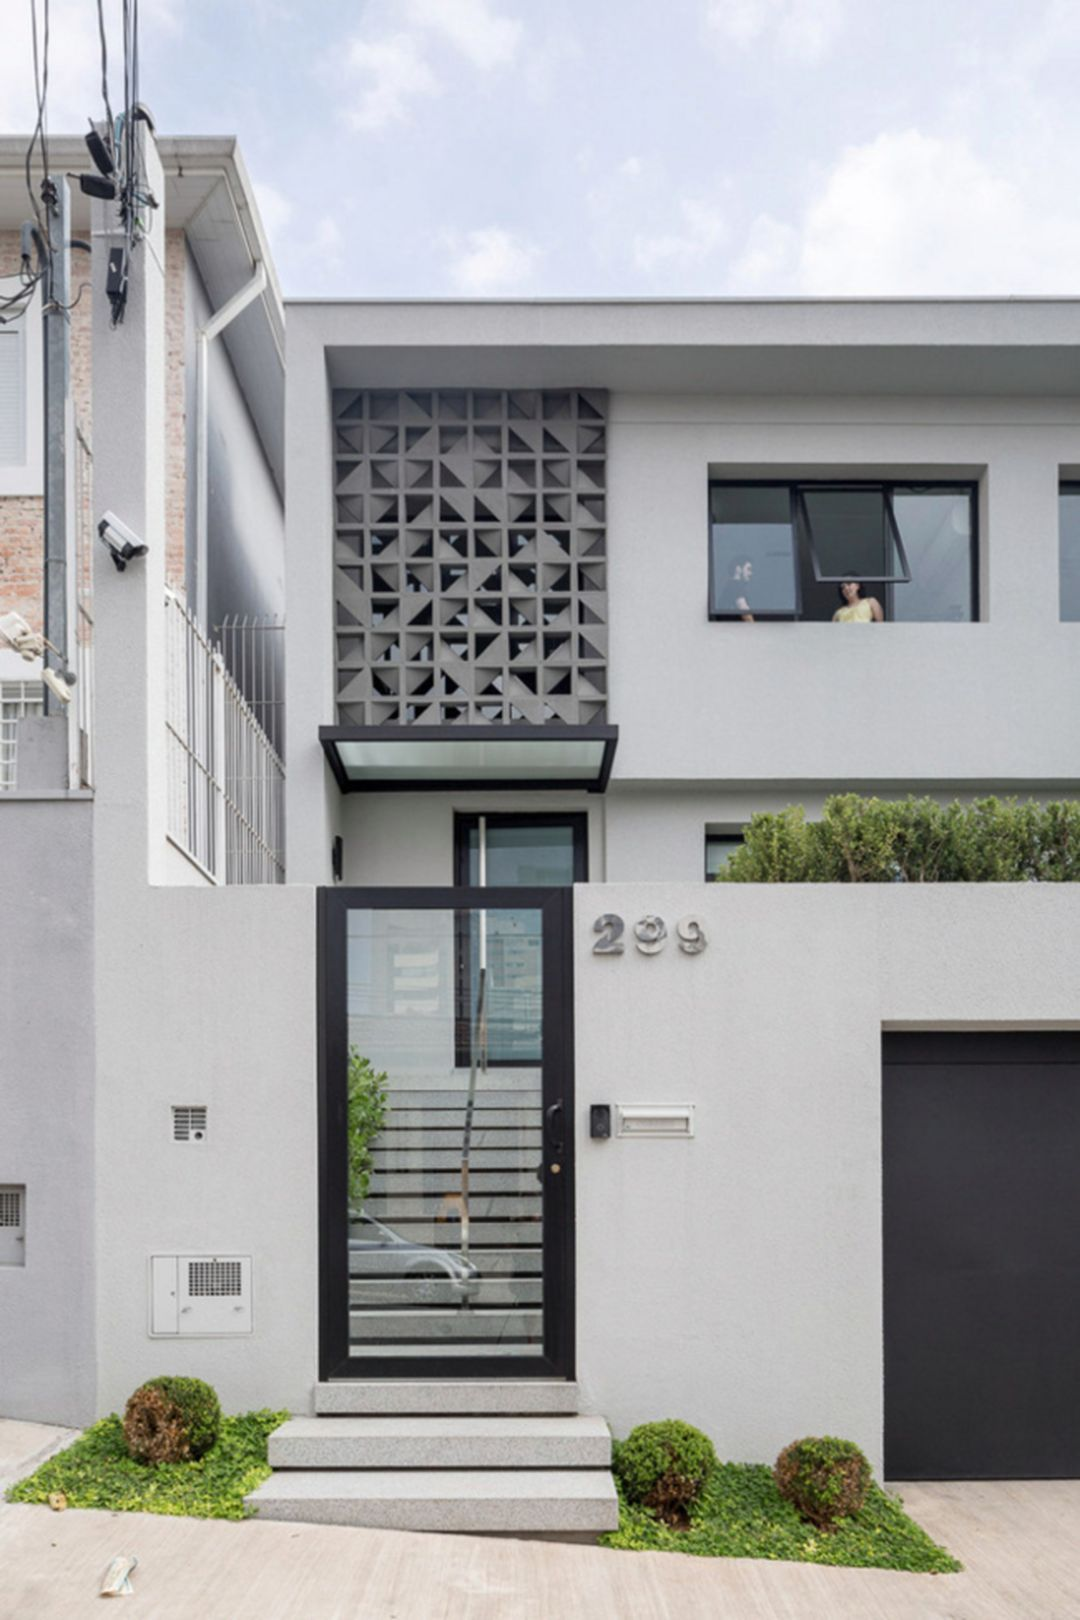 15 Home Fence Design Ideas That You Must Know And You Should Try Home Fashion Rumah Minimalis Rumah